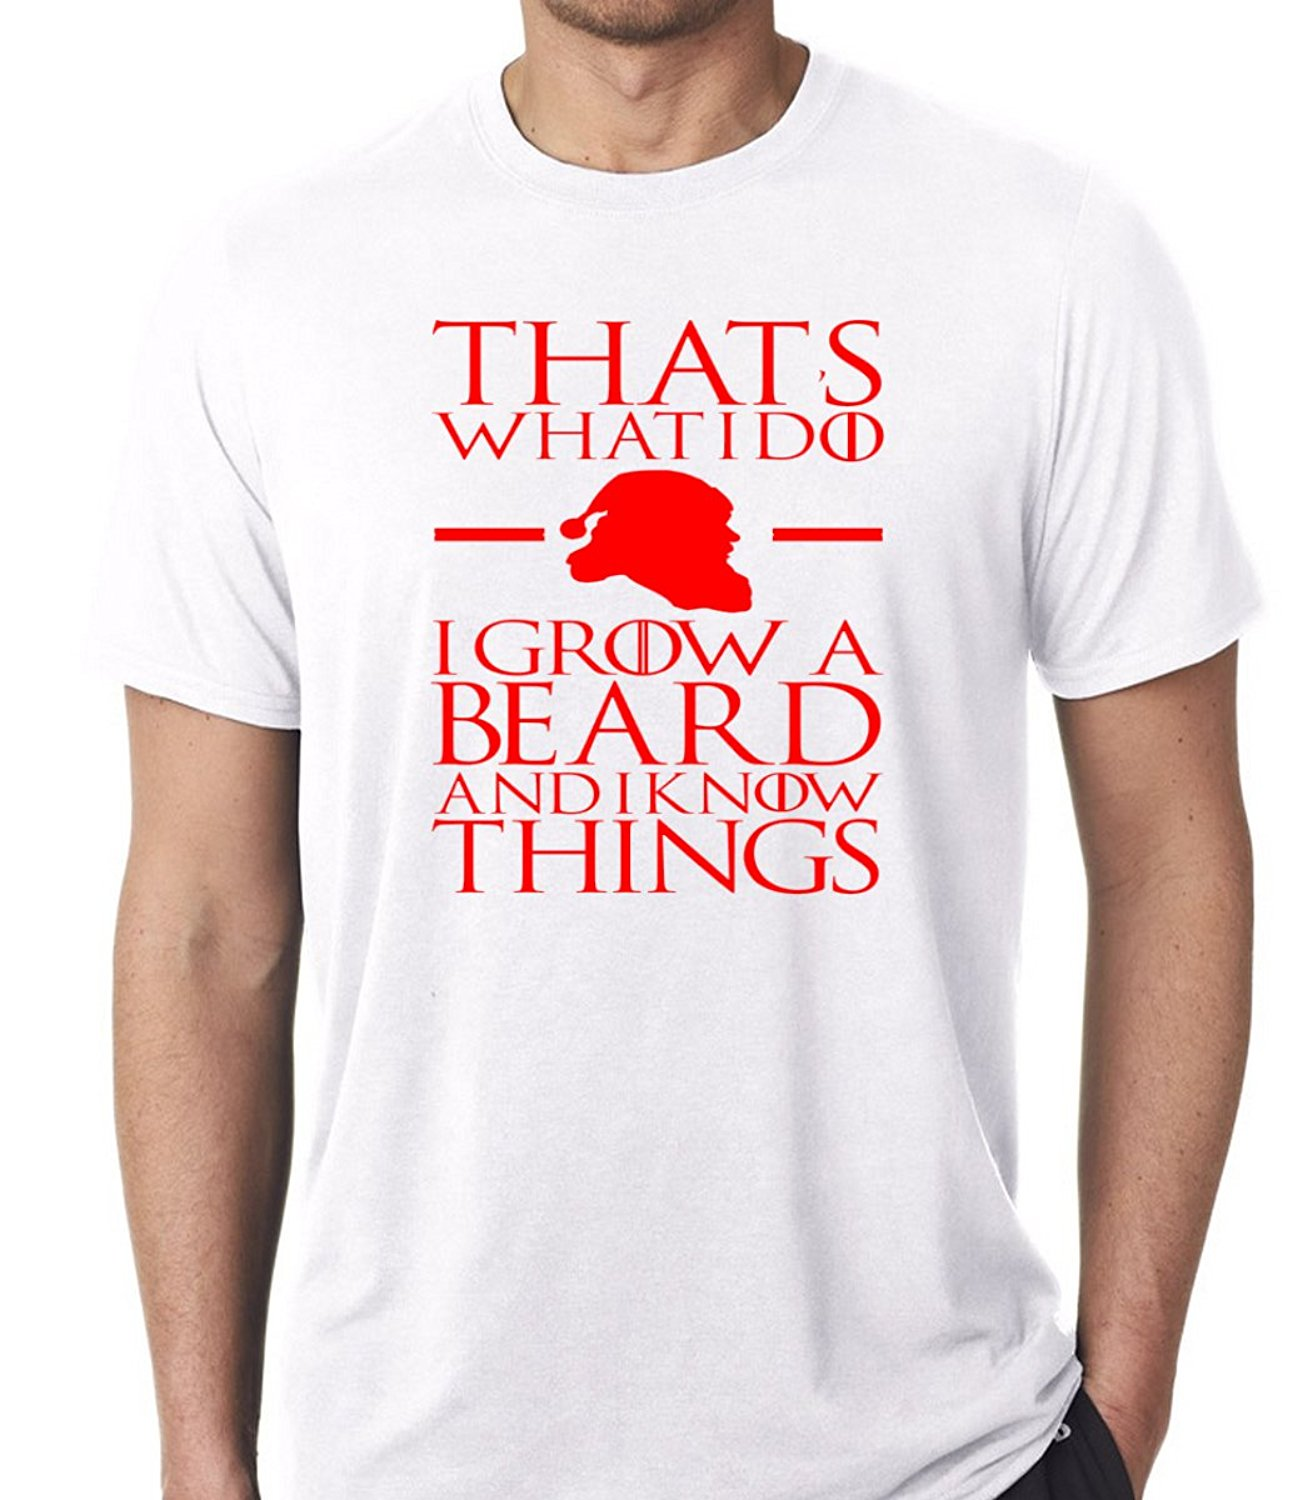 I Grow A Beard and I Know Things - Funny Santa Christmas Day Gift Premium Men's T-Shirt Ment Shirt Summer Style Top Tee